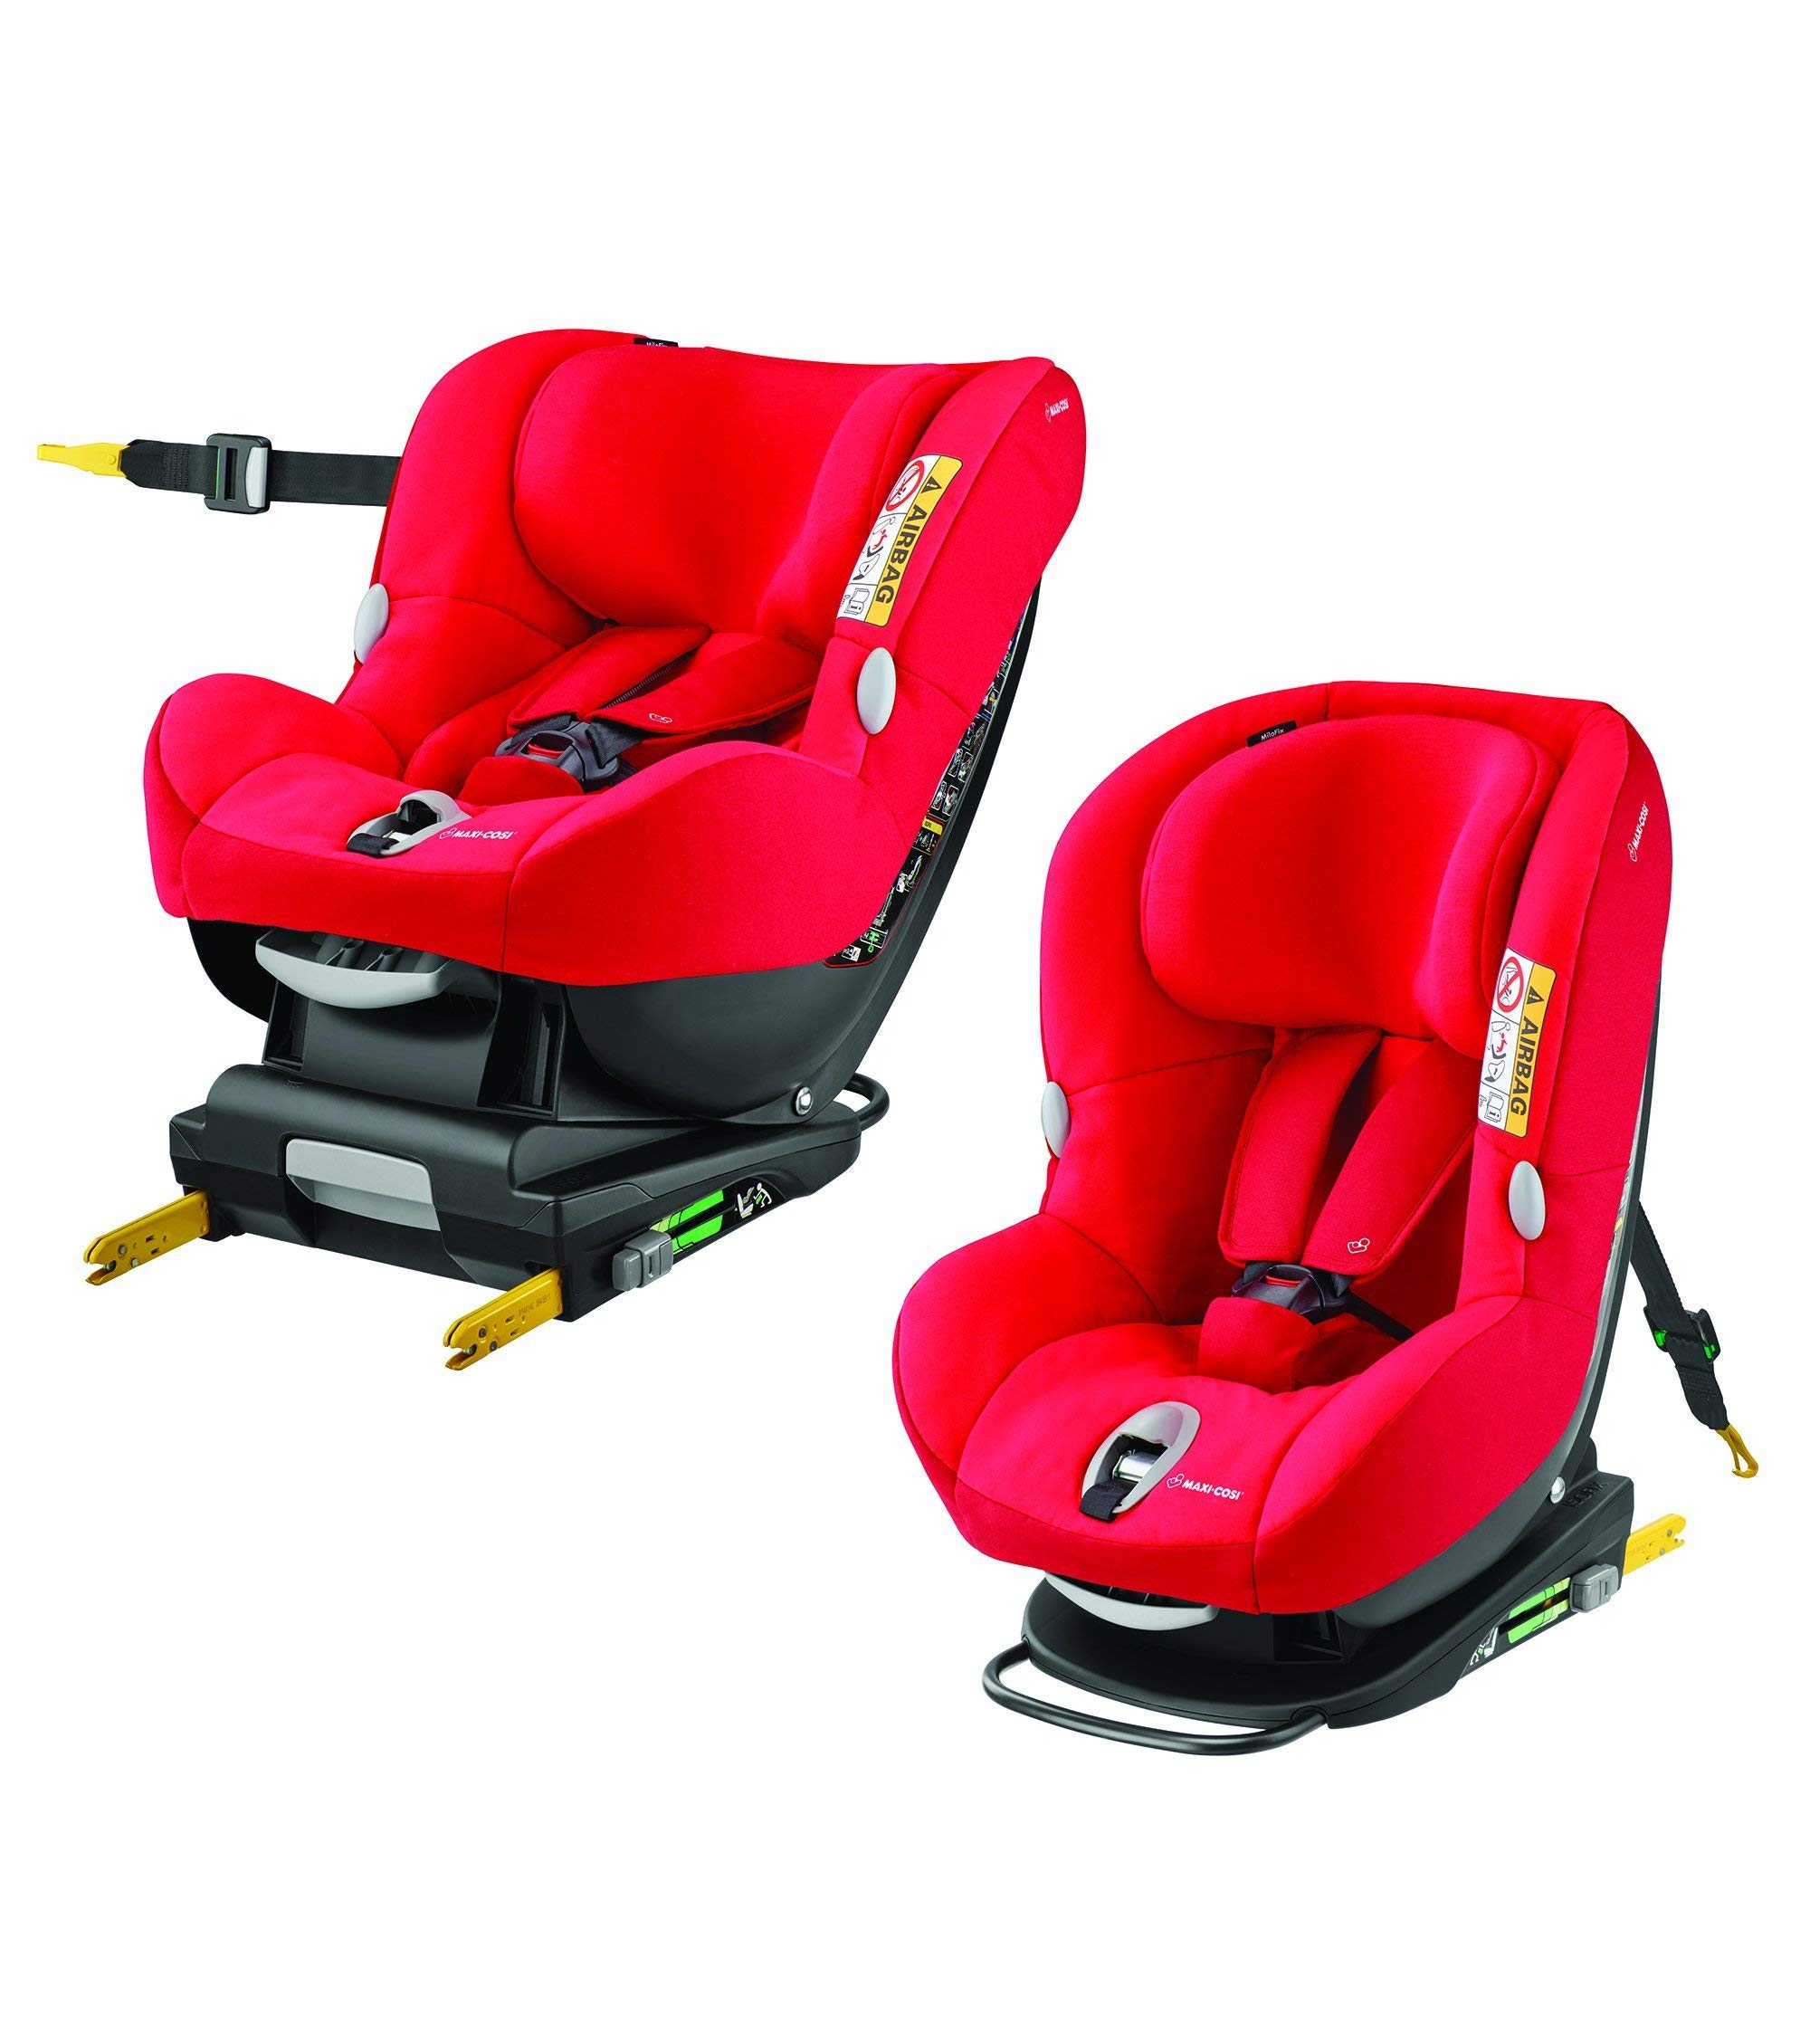 Maxi-Cosi MiloFix ISOFIX Combination Car Seat, Group 0+/1 car seat, Rear and Forward-facing, 0-4 years, 0-18 kg, Vivid Red Maxi-Cosi Rear and forward facing group 0+/1 car seat, suitable from birth to 18 kg (birth to 4 years) i-Size car seat, extended rearward-facing travel up until 18 months Padded seat and angled base provide additional leg room in rear-facing position 6